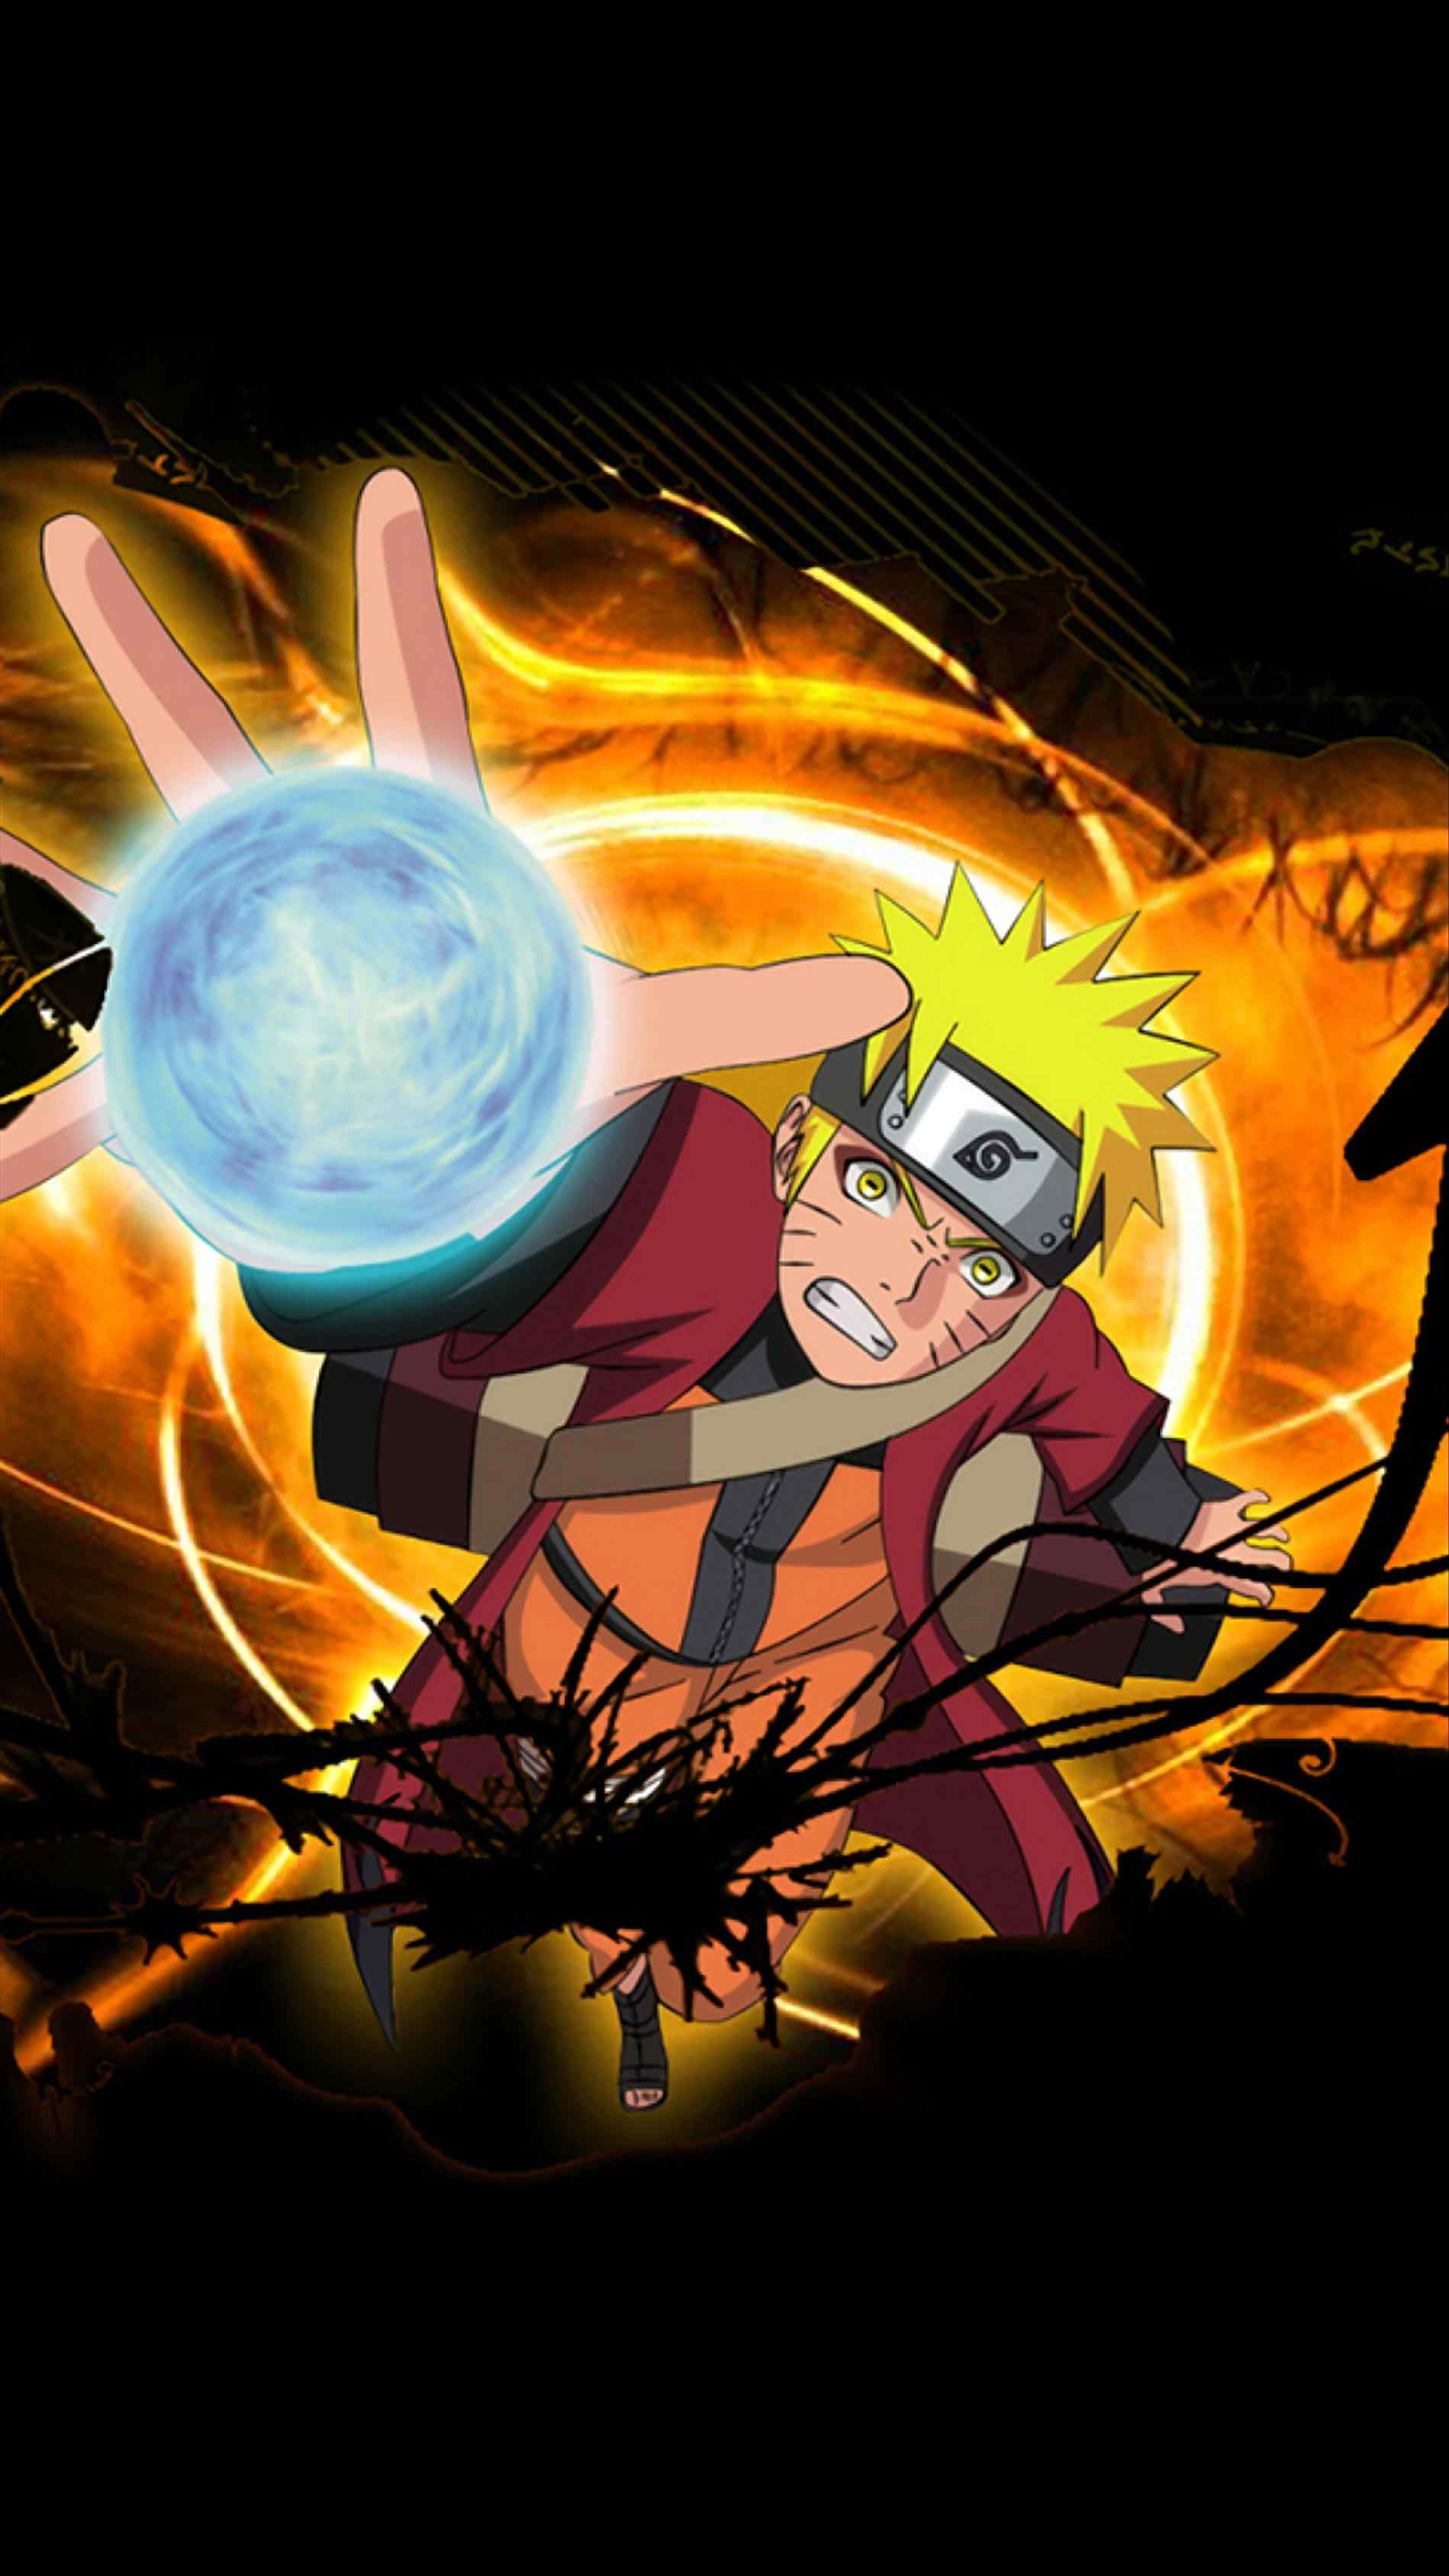 1899x3377 vs sasuke shippuden pictures of download x evolution leaves s download naruto  rasengan iphone wallpaper x